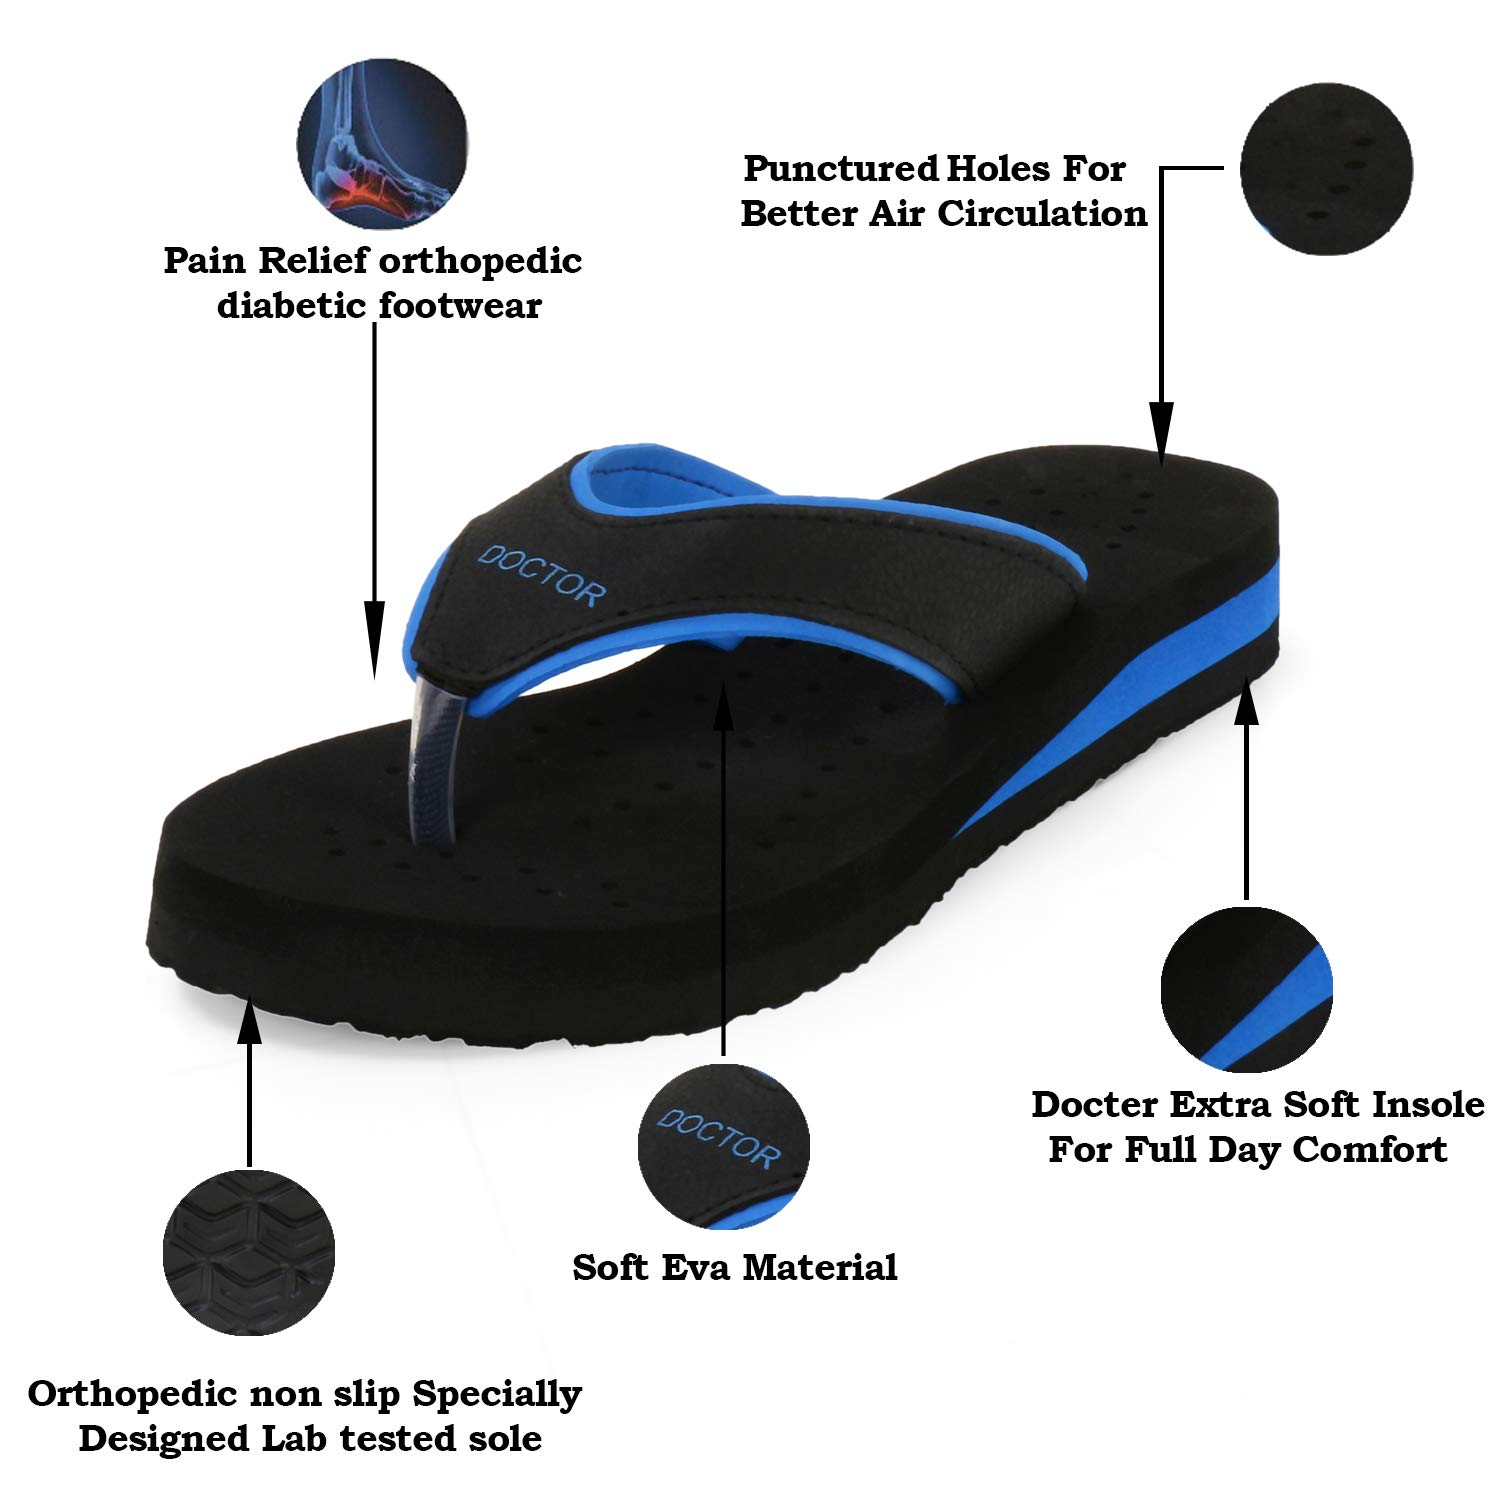 5 best medicated slippers for heel pain india 2021